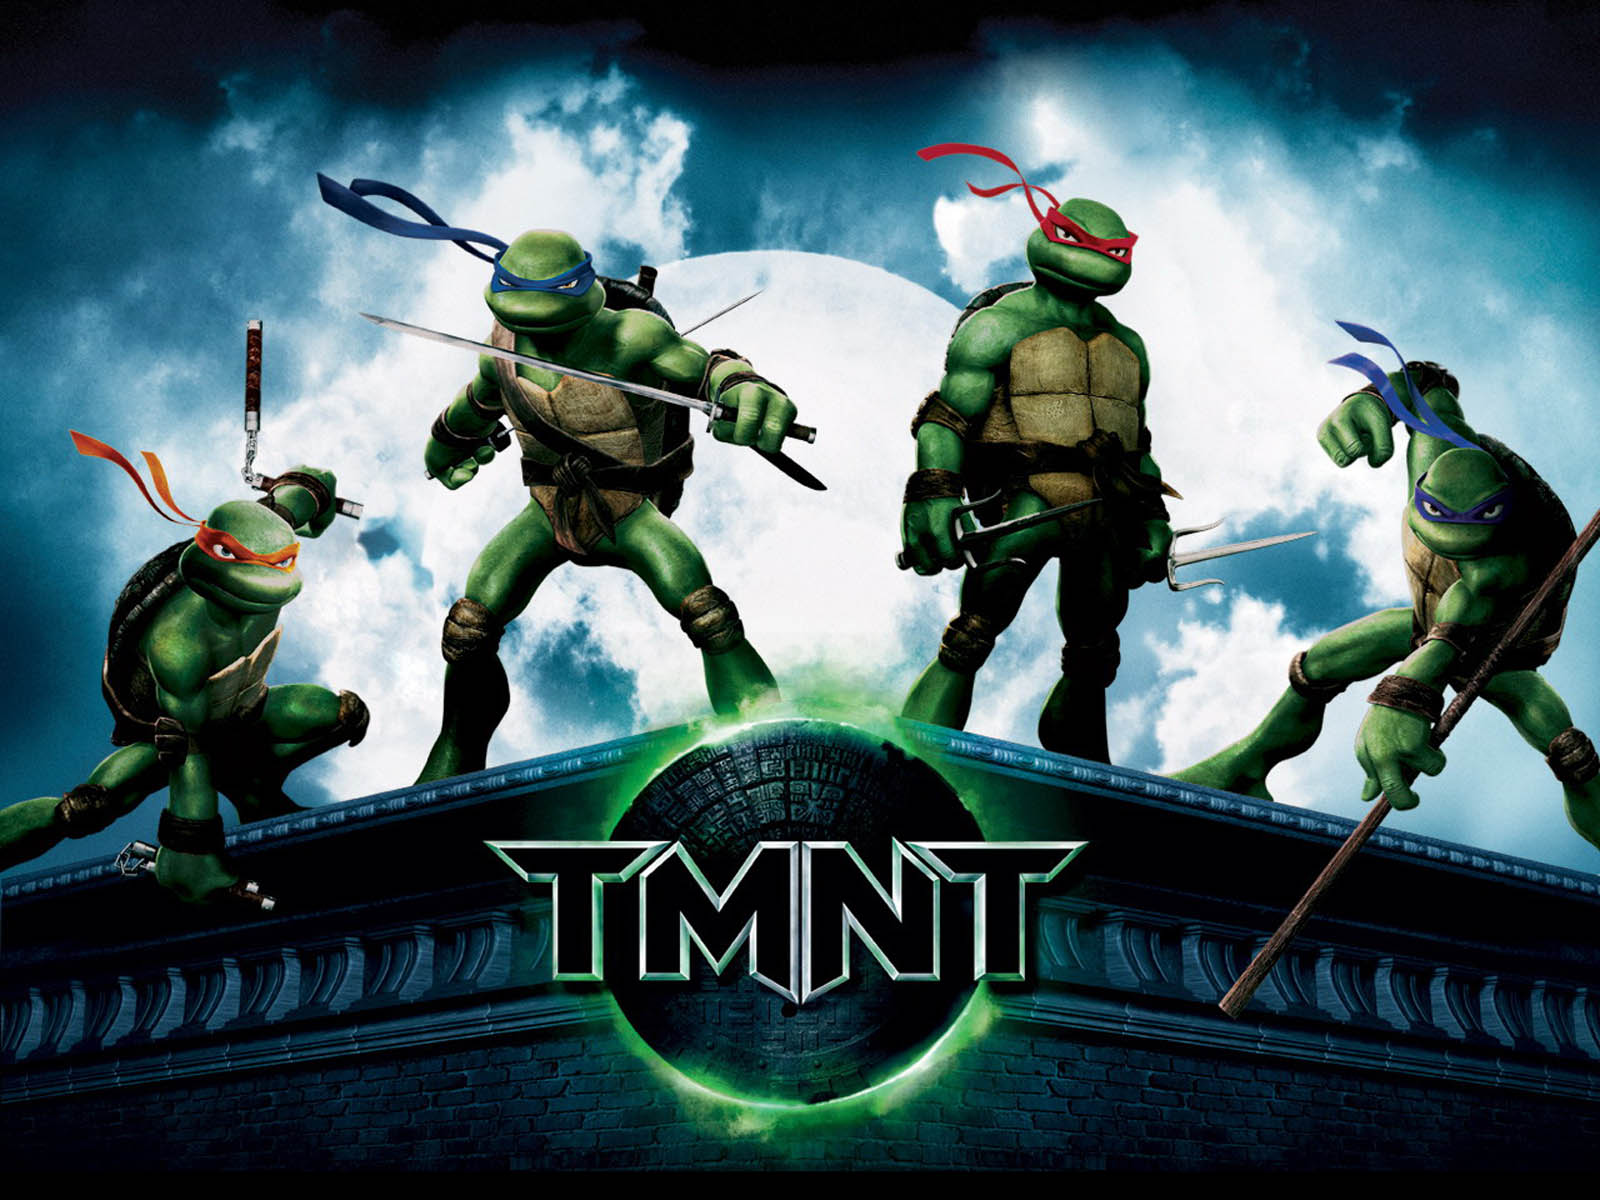 Tag: Teenage Mutant Ninja Turtles (TMNT) Wallpapers, Images, Photos